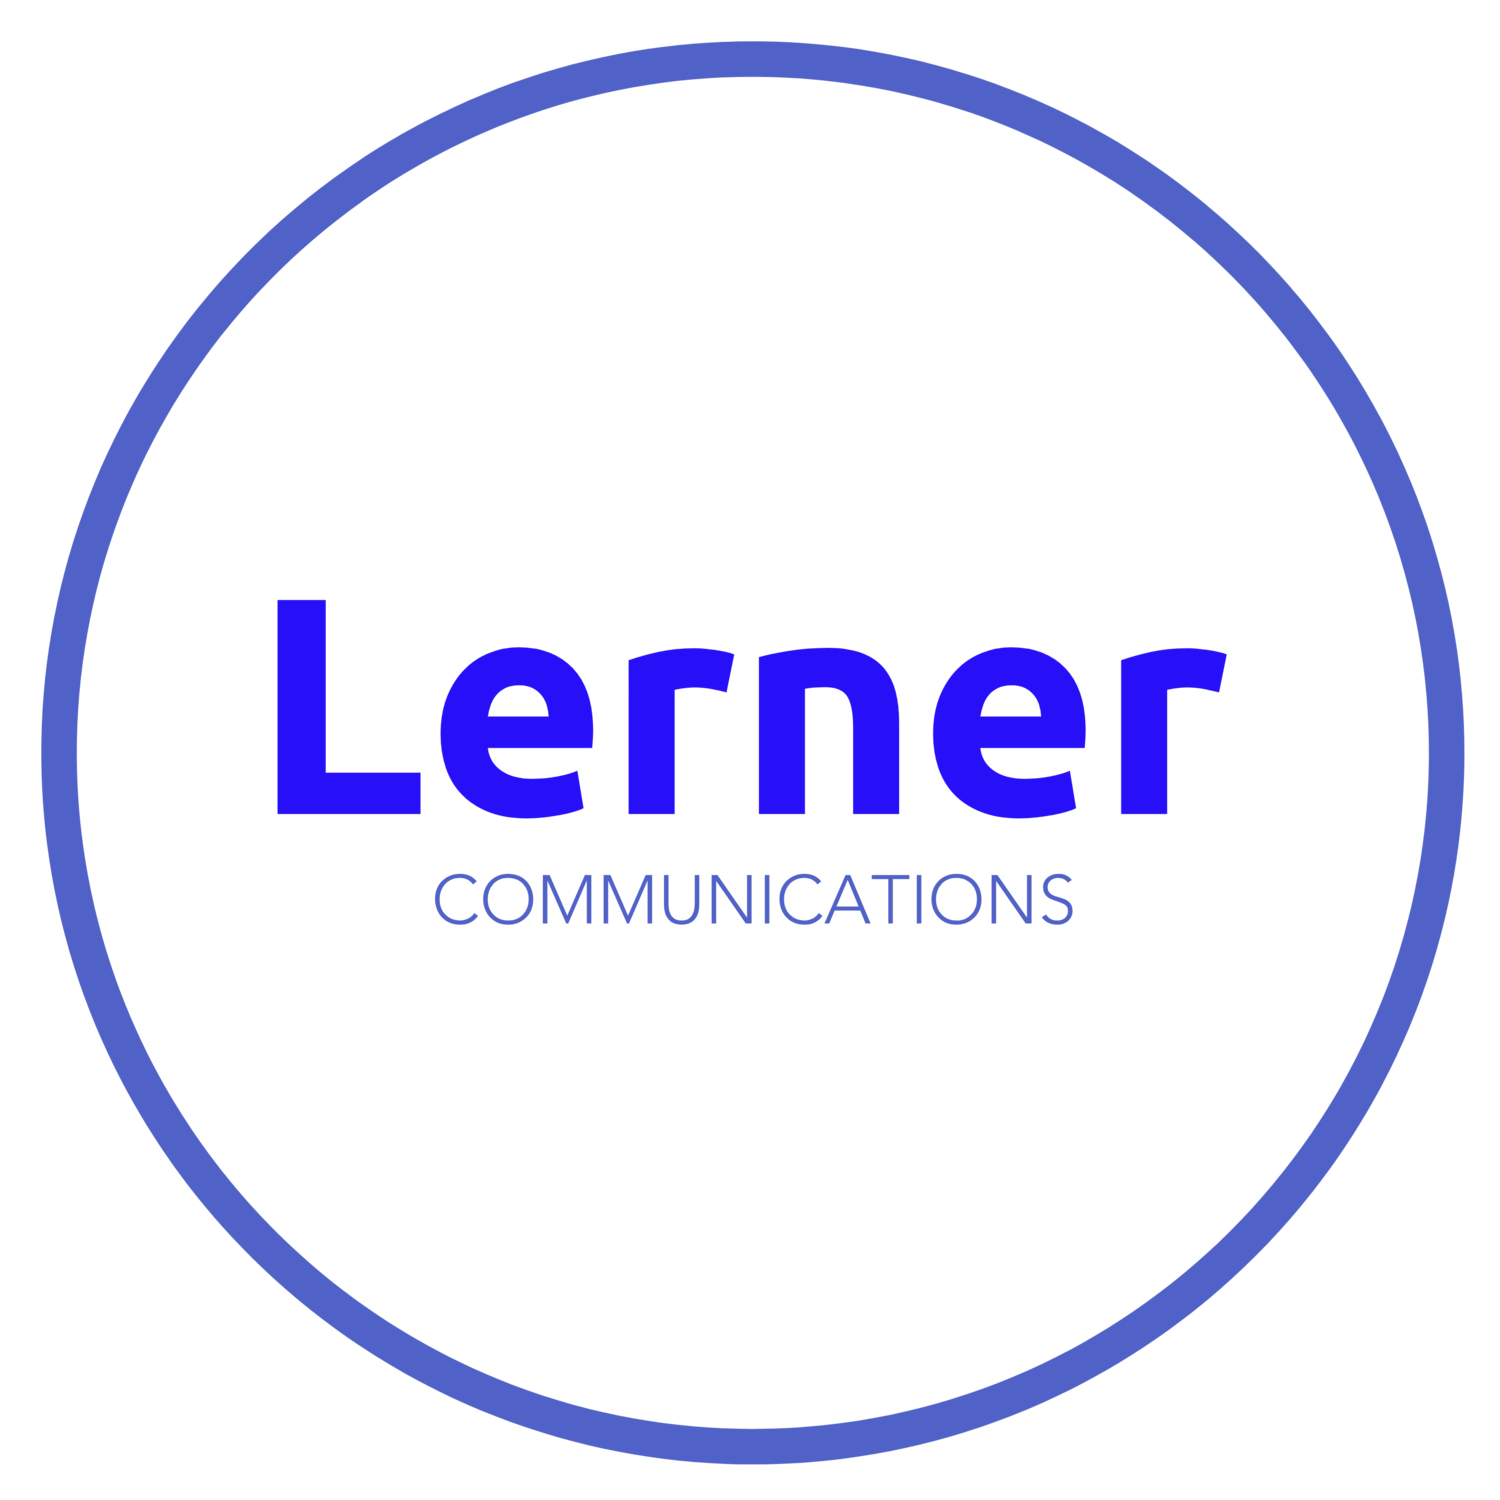 Lerner Communications